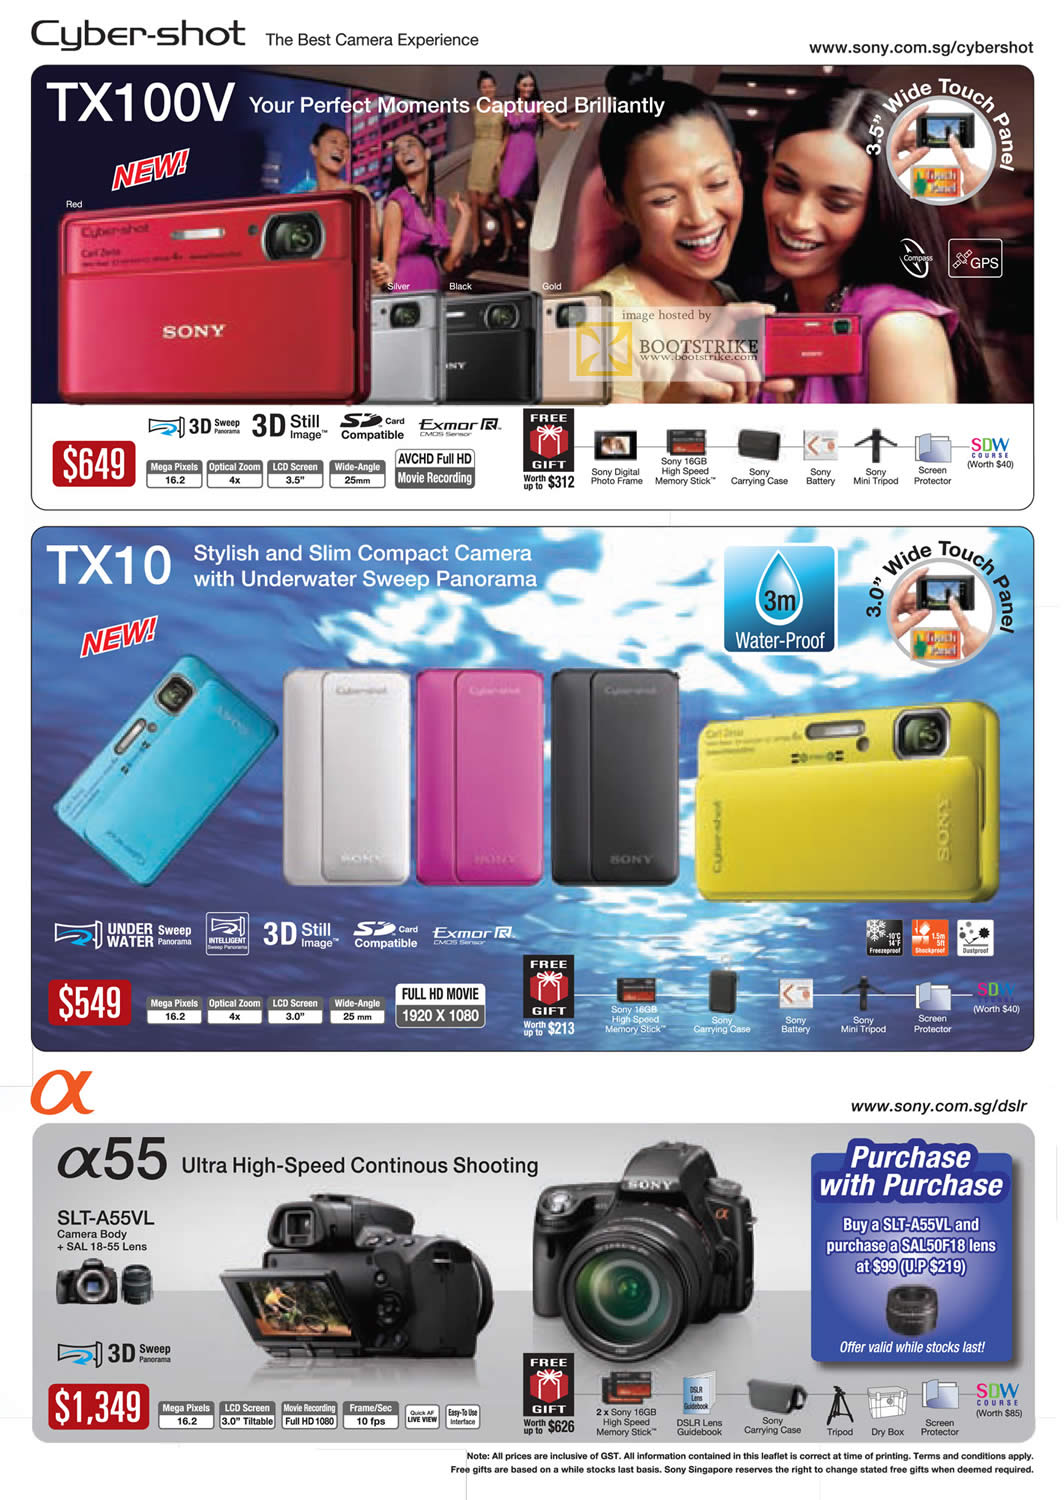 PC Show 2011 price list image brochure of Sony Digital Cameras Cybershot DSC TX100V TX10 Alpha 55 SLT-A55VL